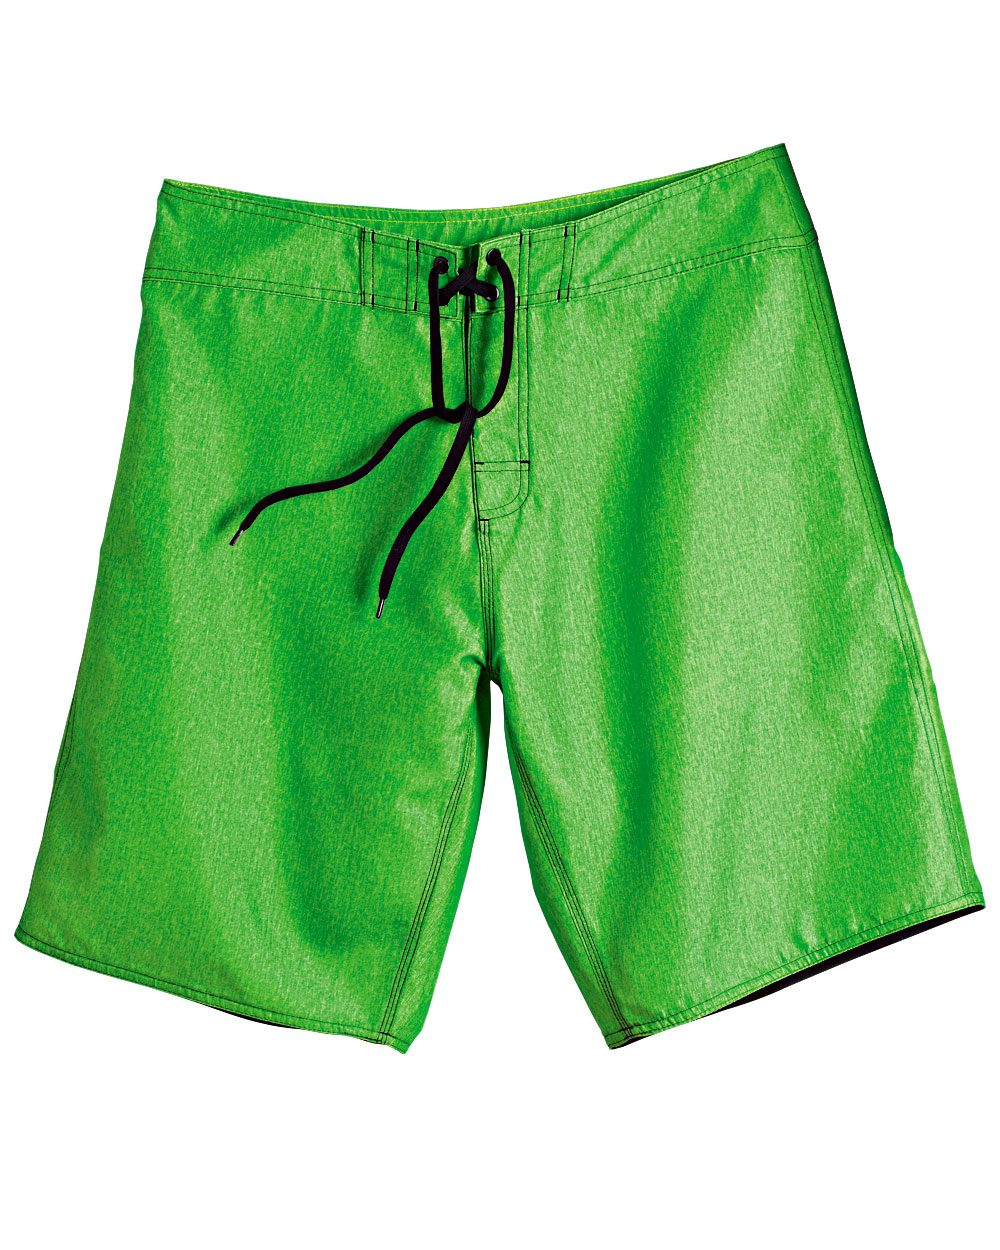 Burnside Heathered Board Shorts - B9305